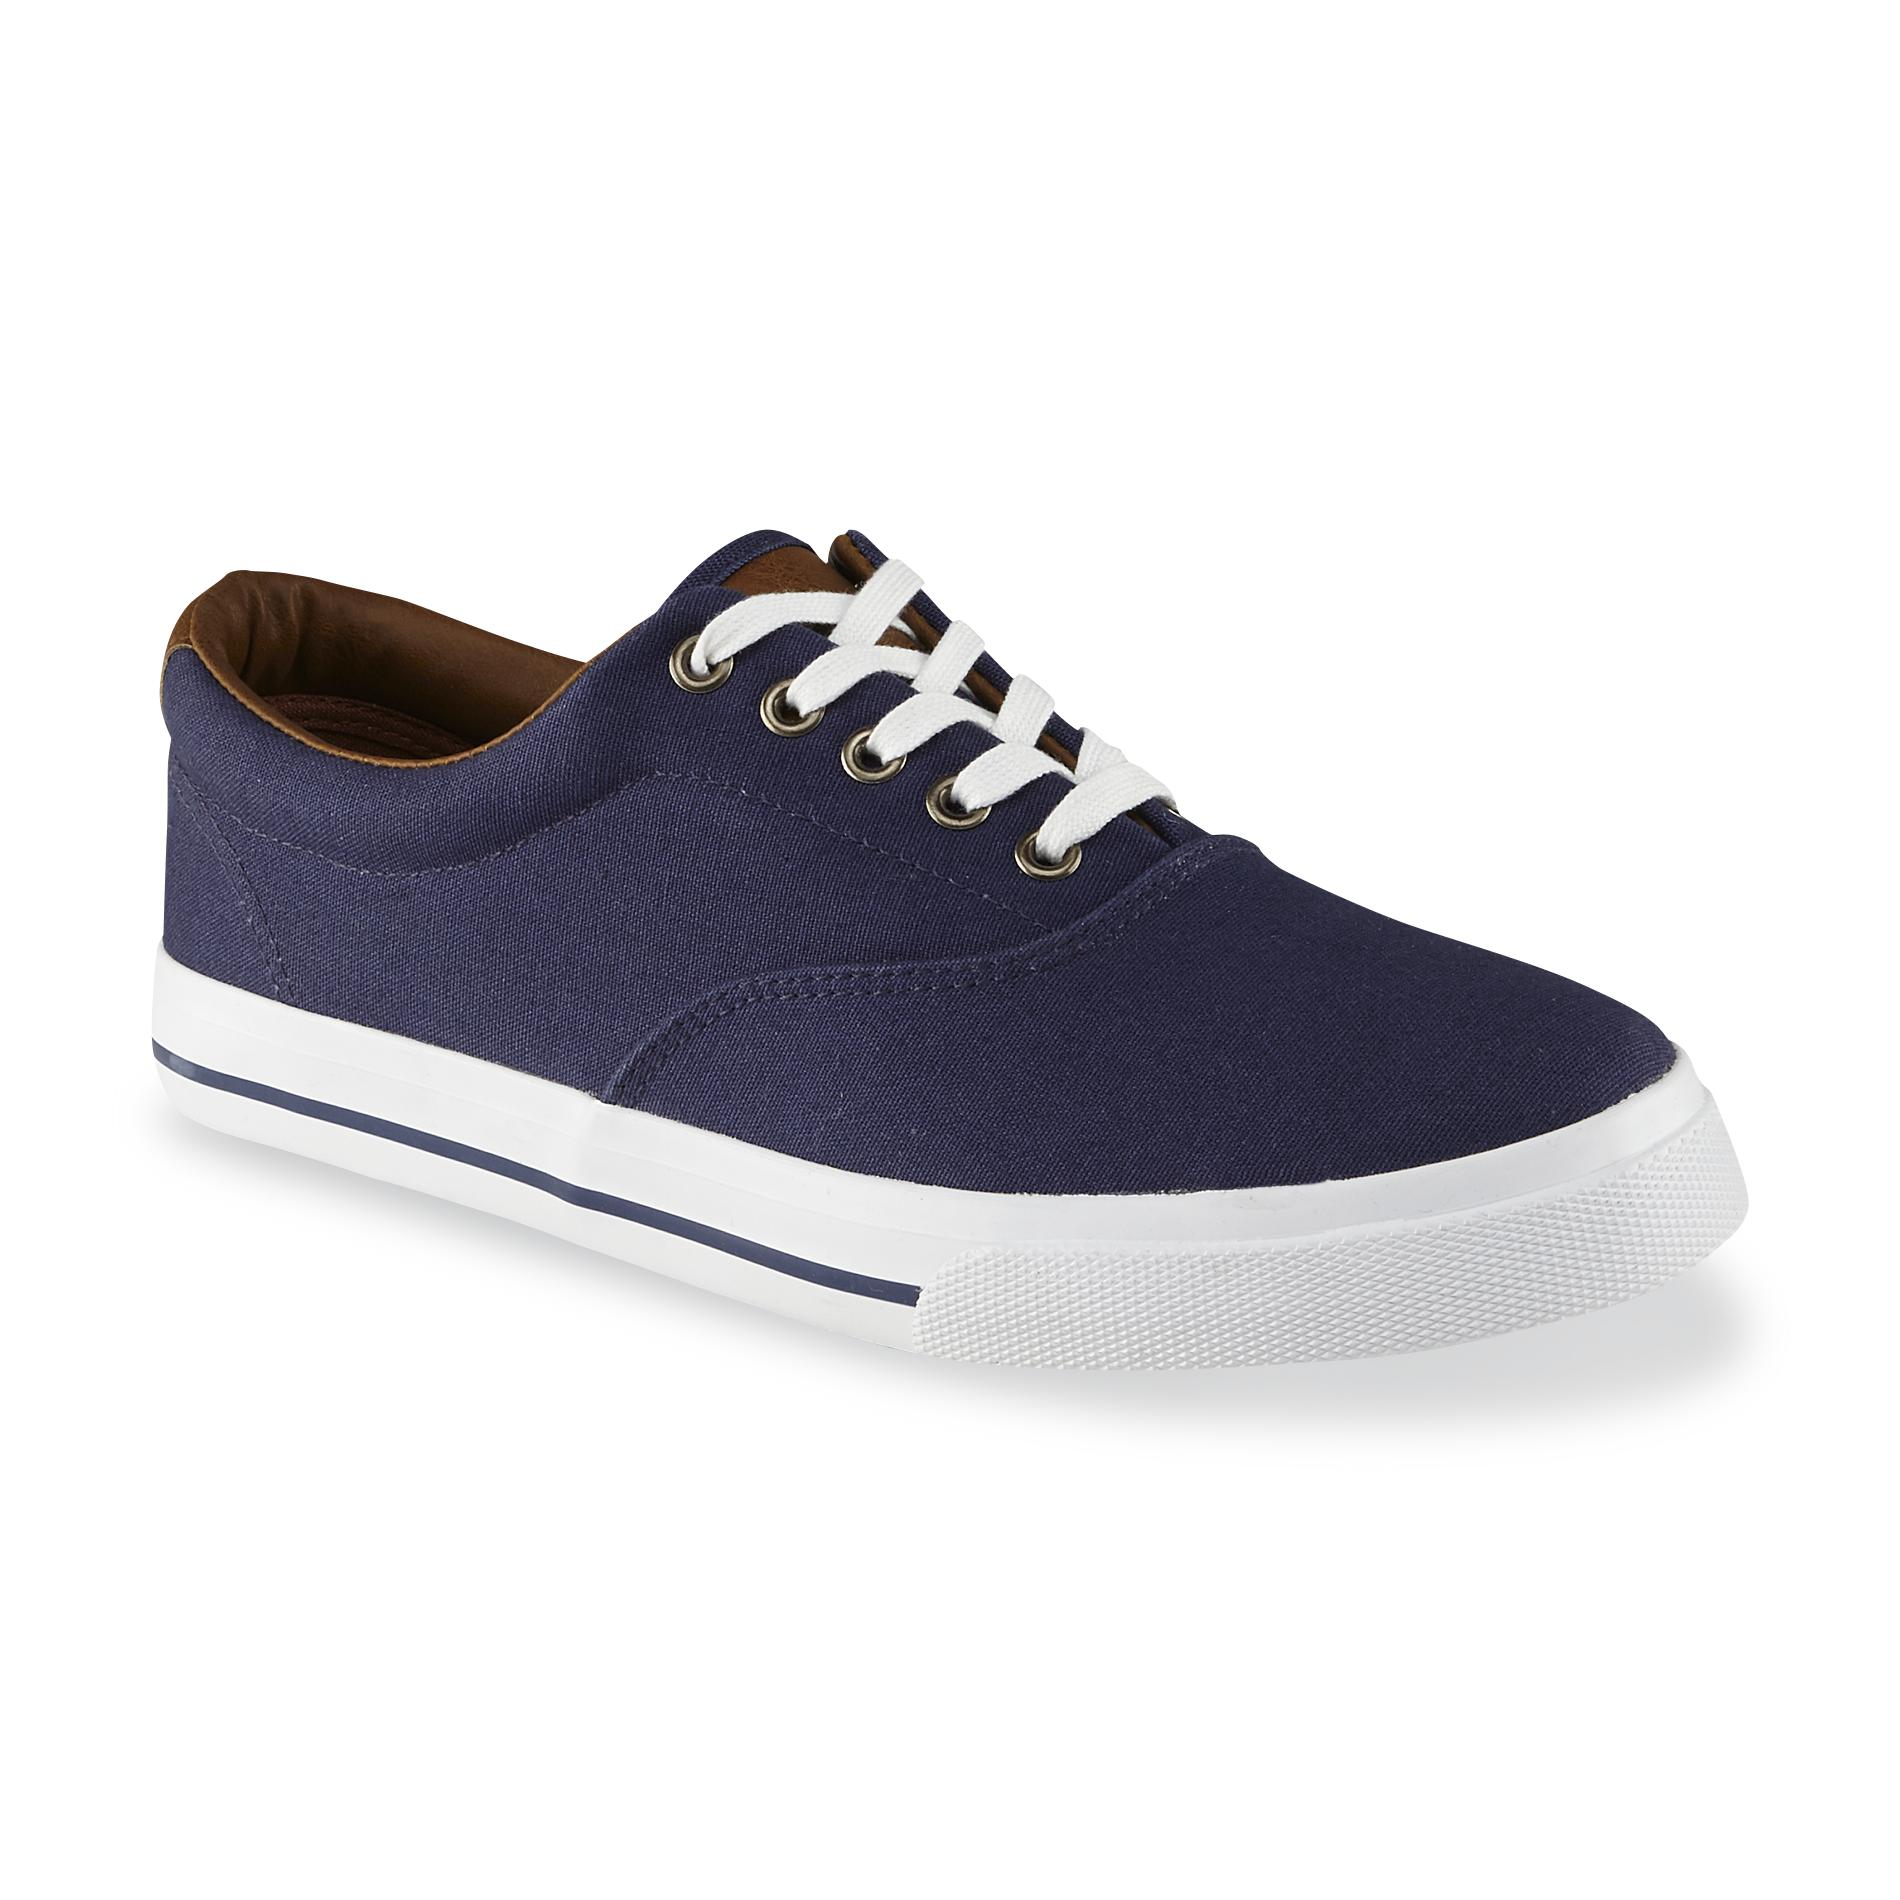 Thom McAn Mens Montrose Canvas Casual Oxford Navy